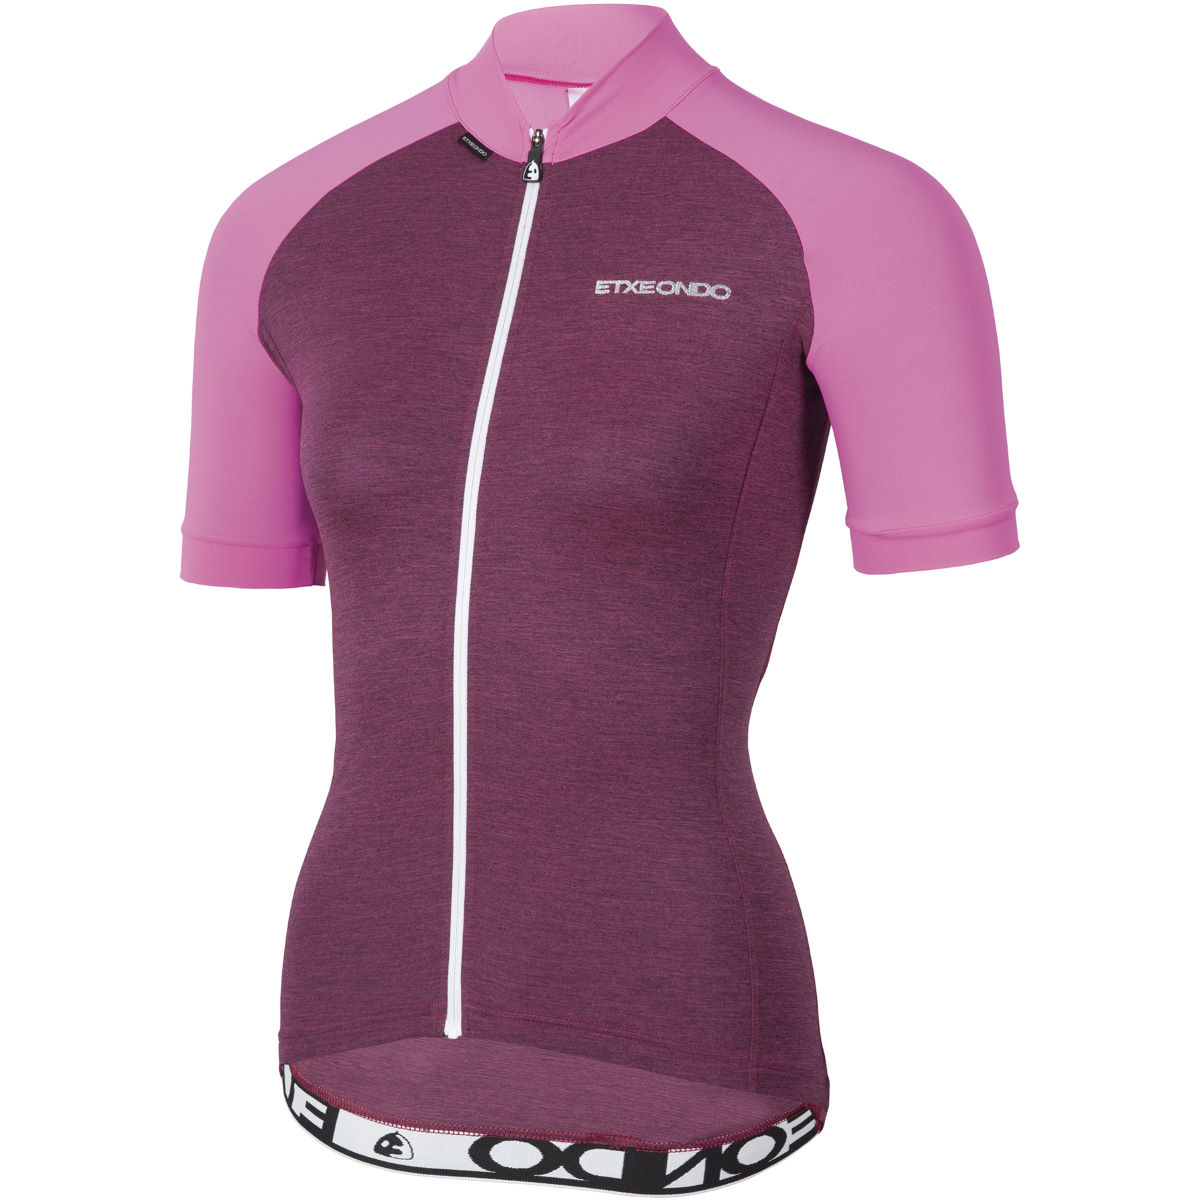 Image of Maillot Femme Etxeondo Terra (manches courtes) - L Pink Fluro